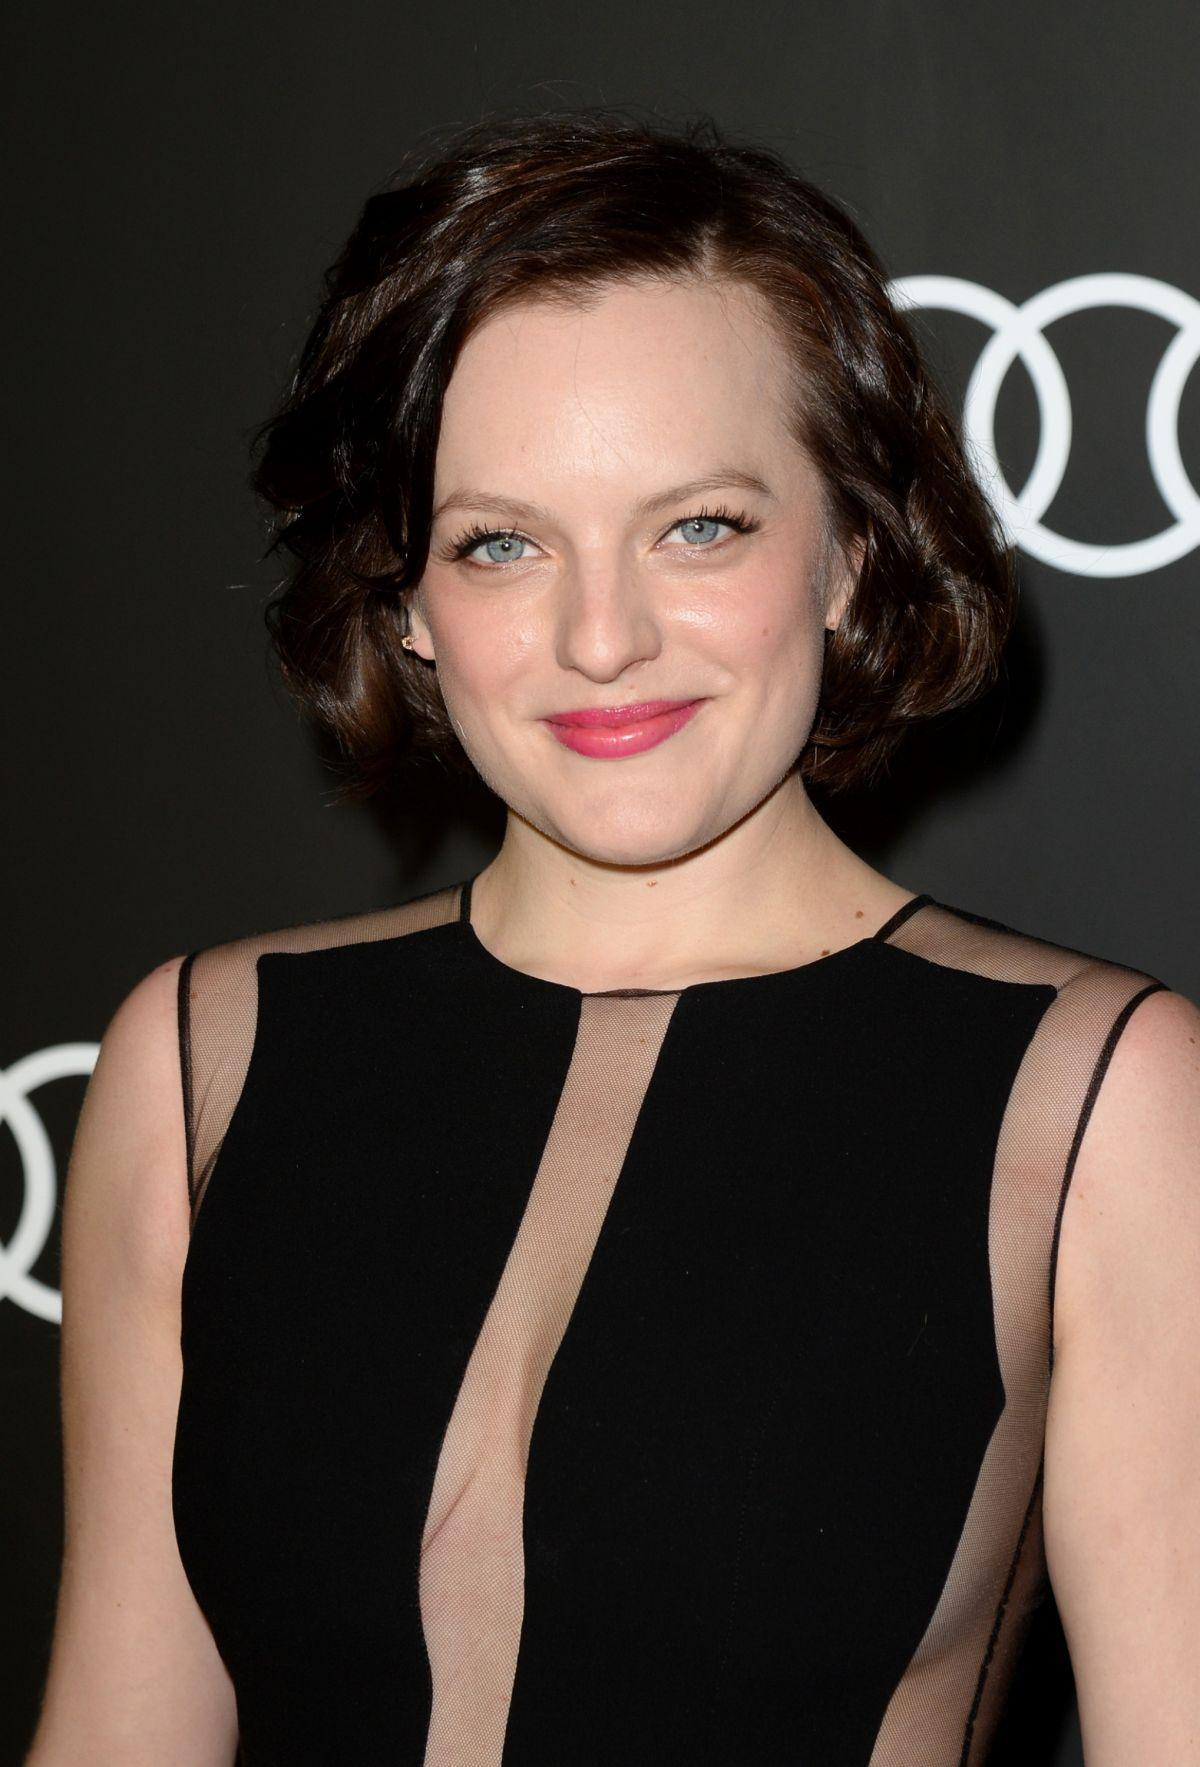 Image - Elisabeth-moss-offred.jpg | The Handmaid's Tale Wiki ...